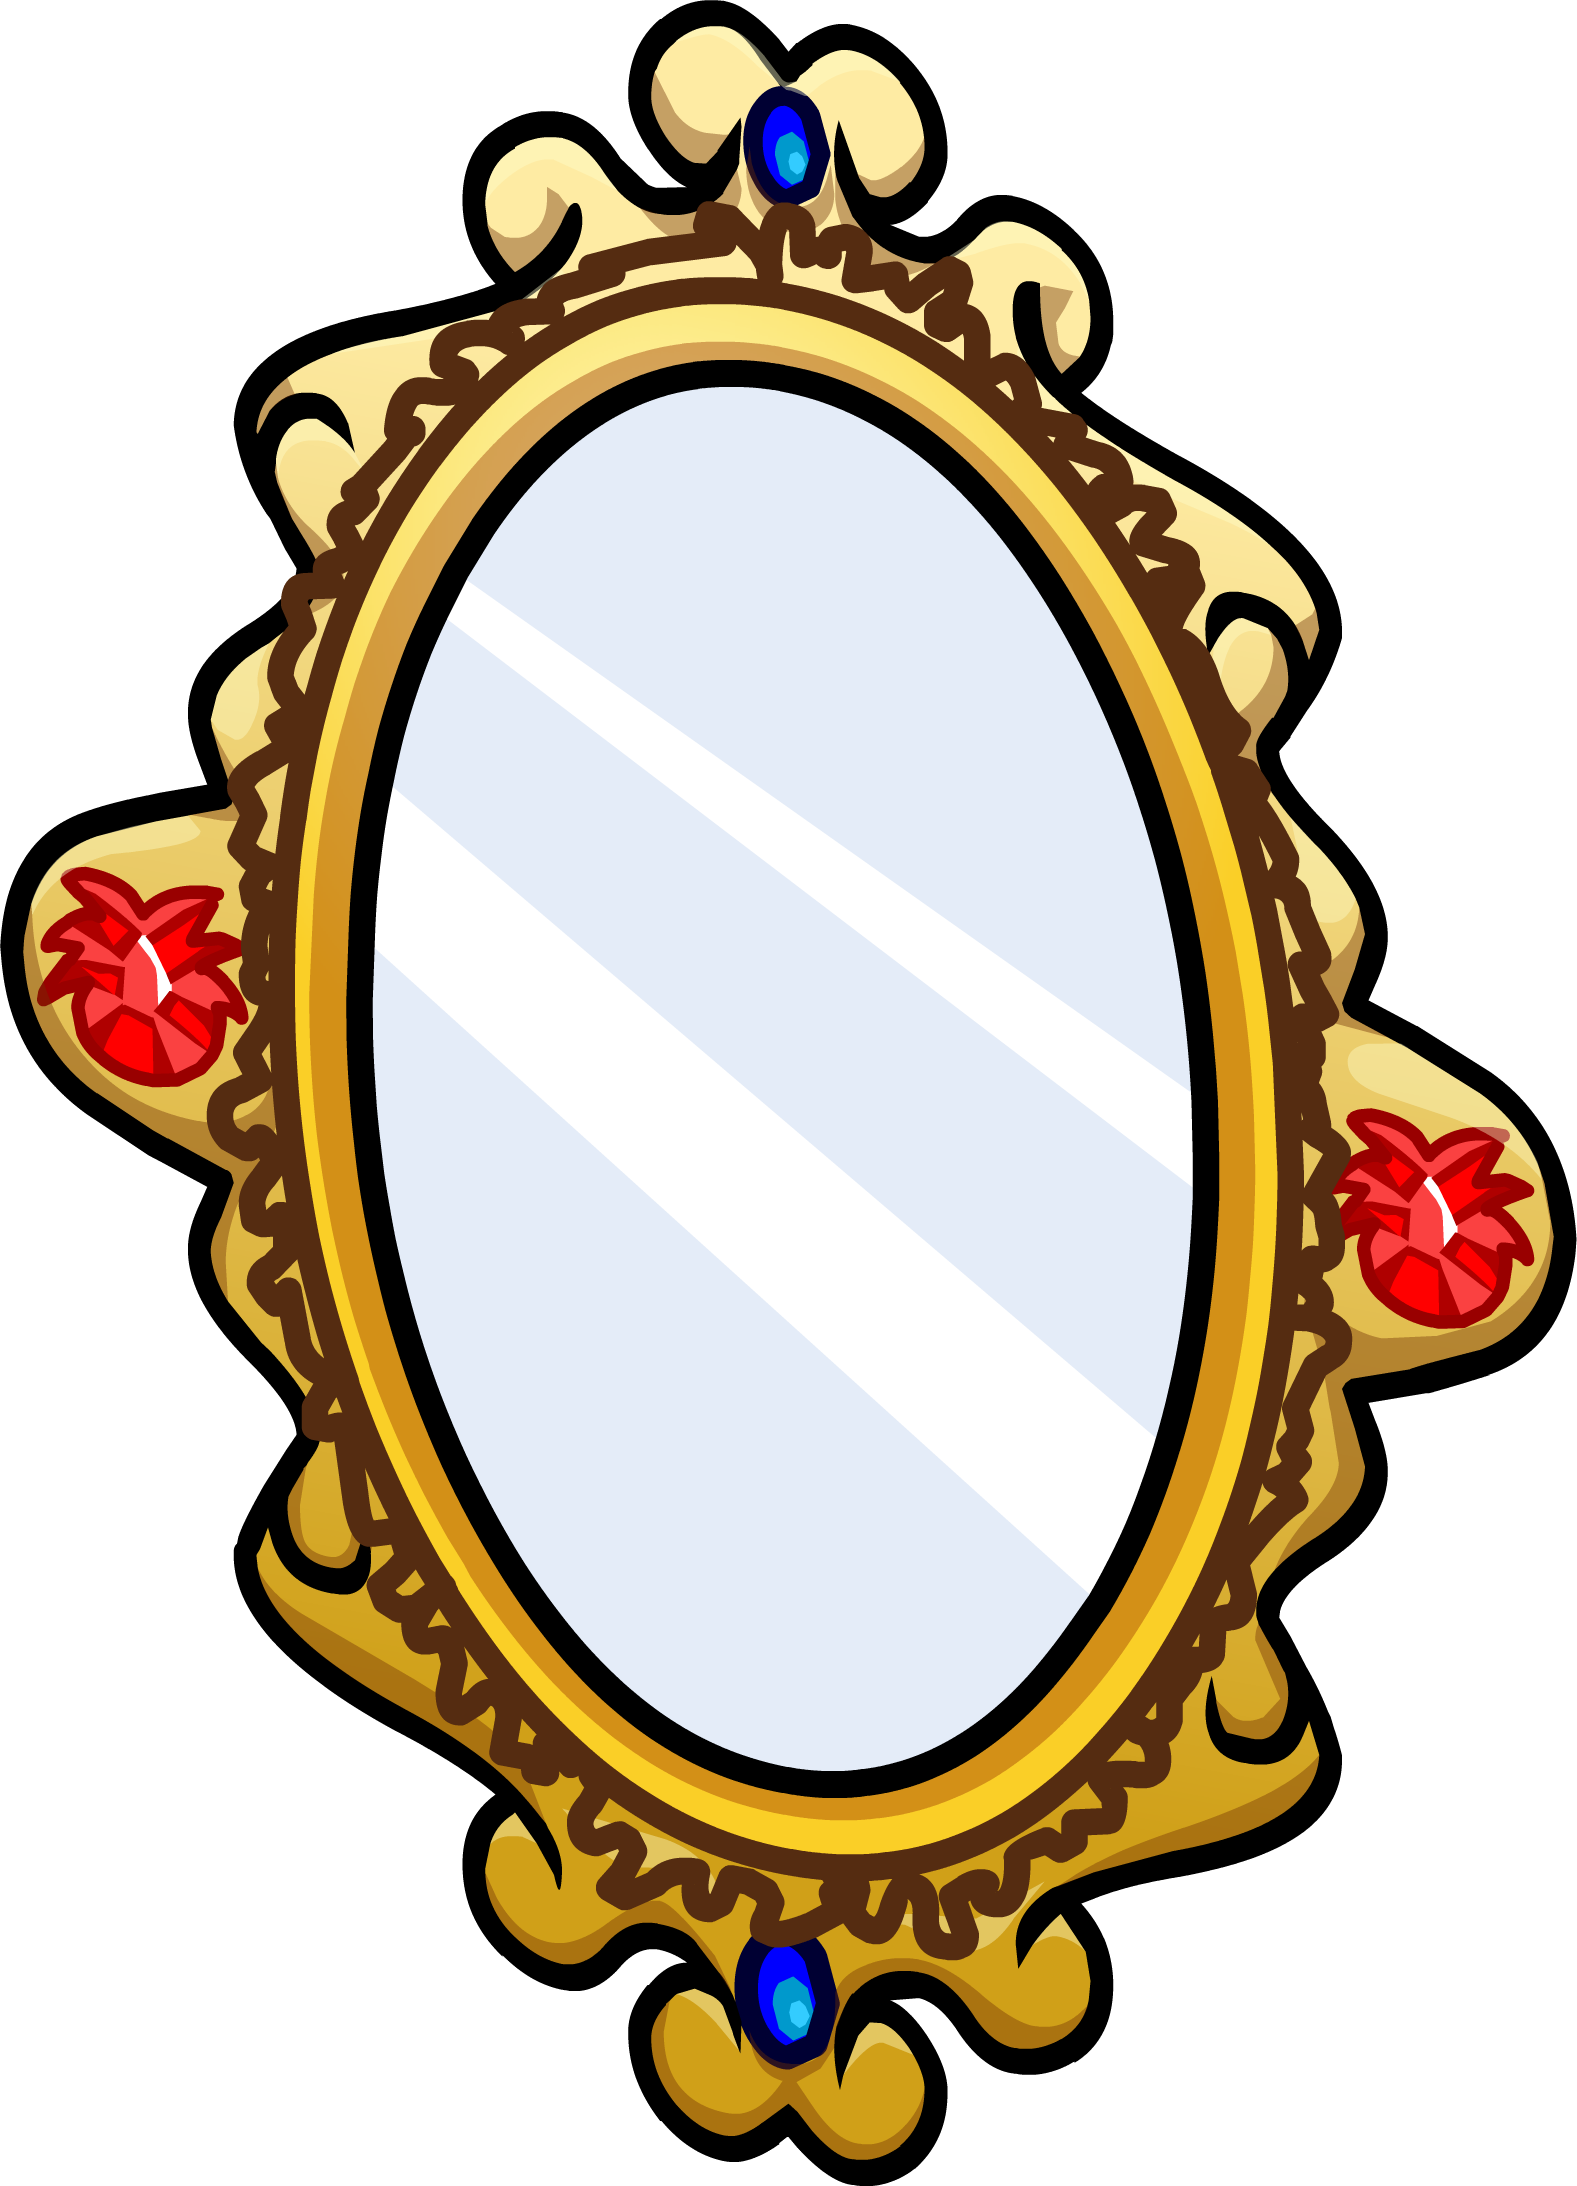 Mirror clipart ornate. Image sprite png club